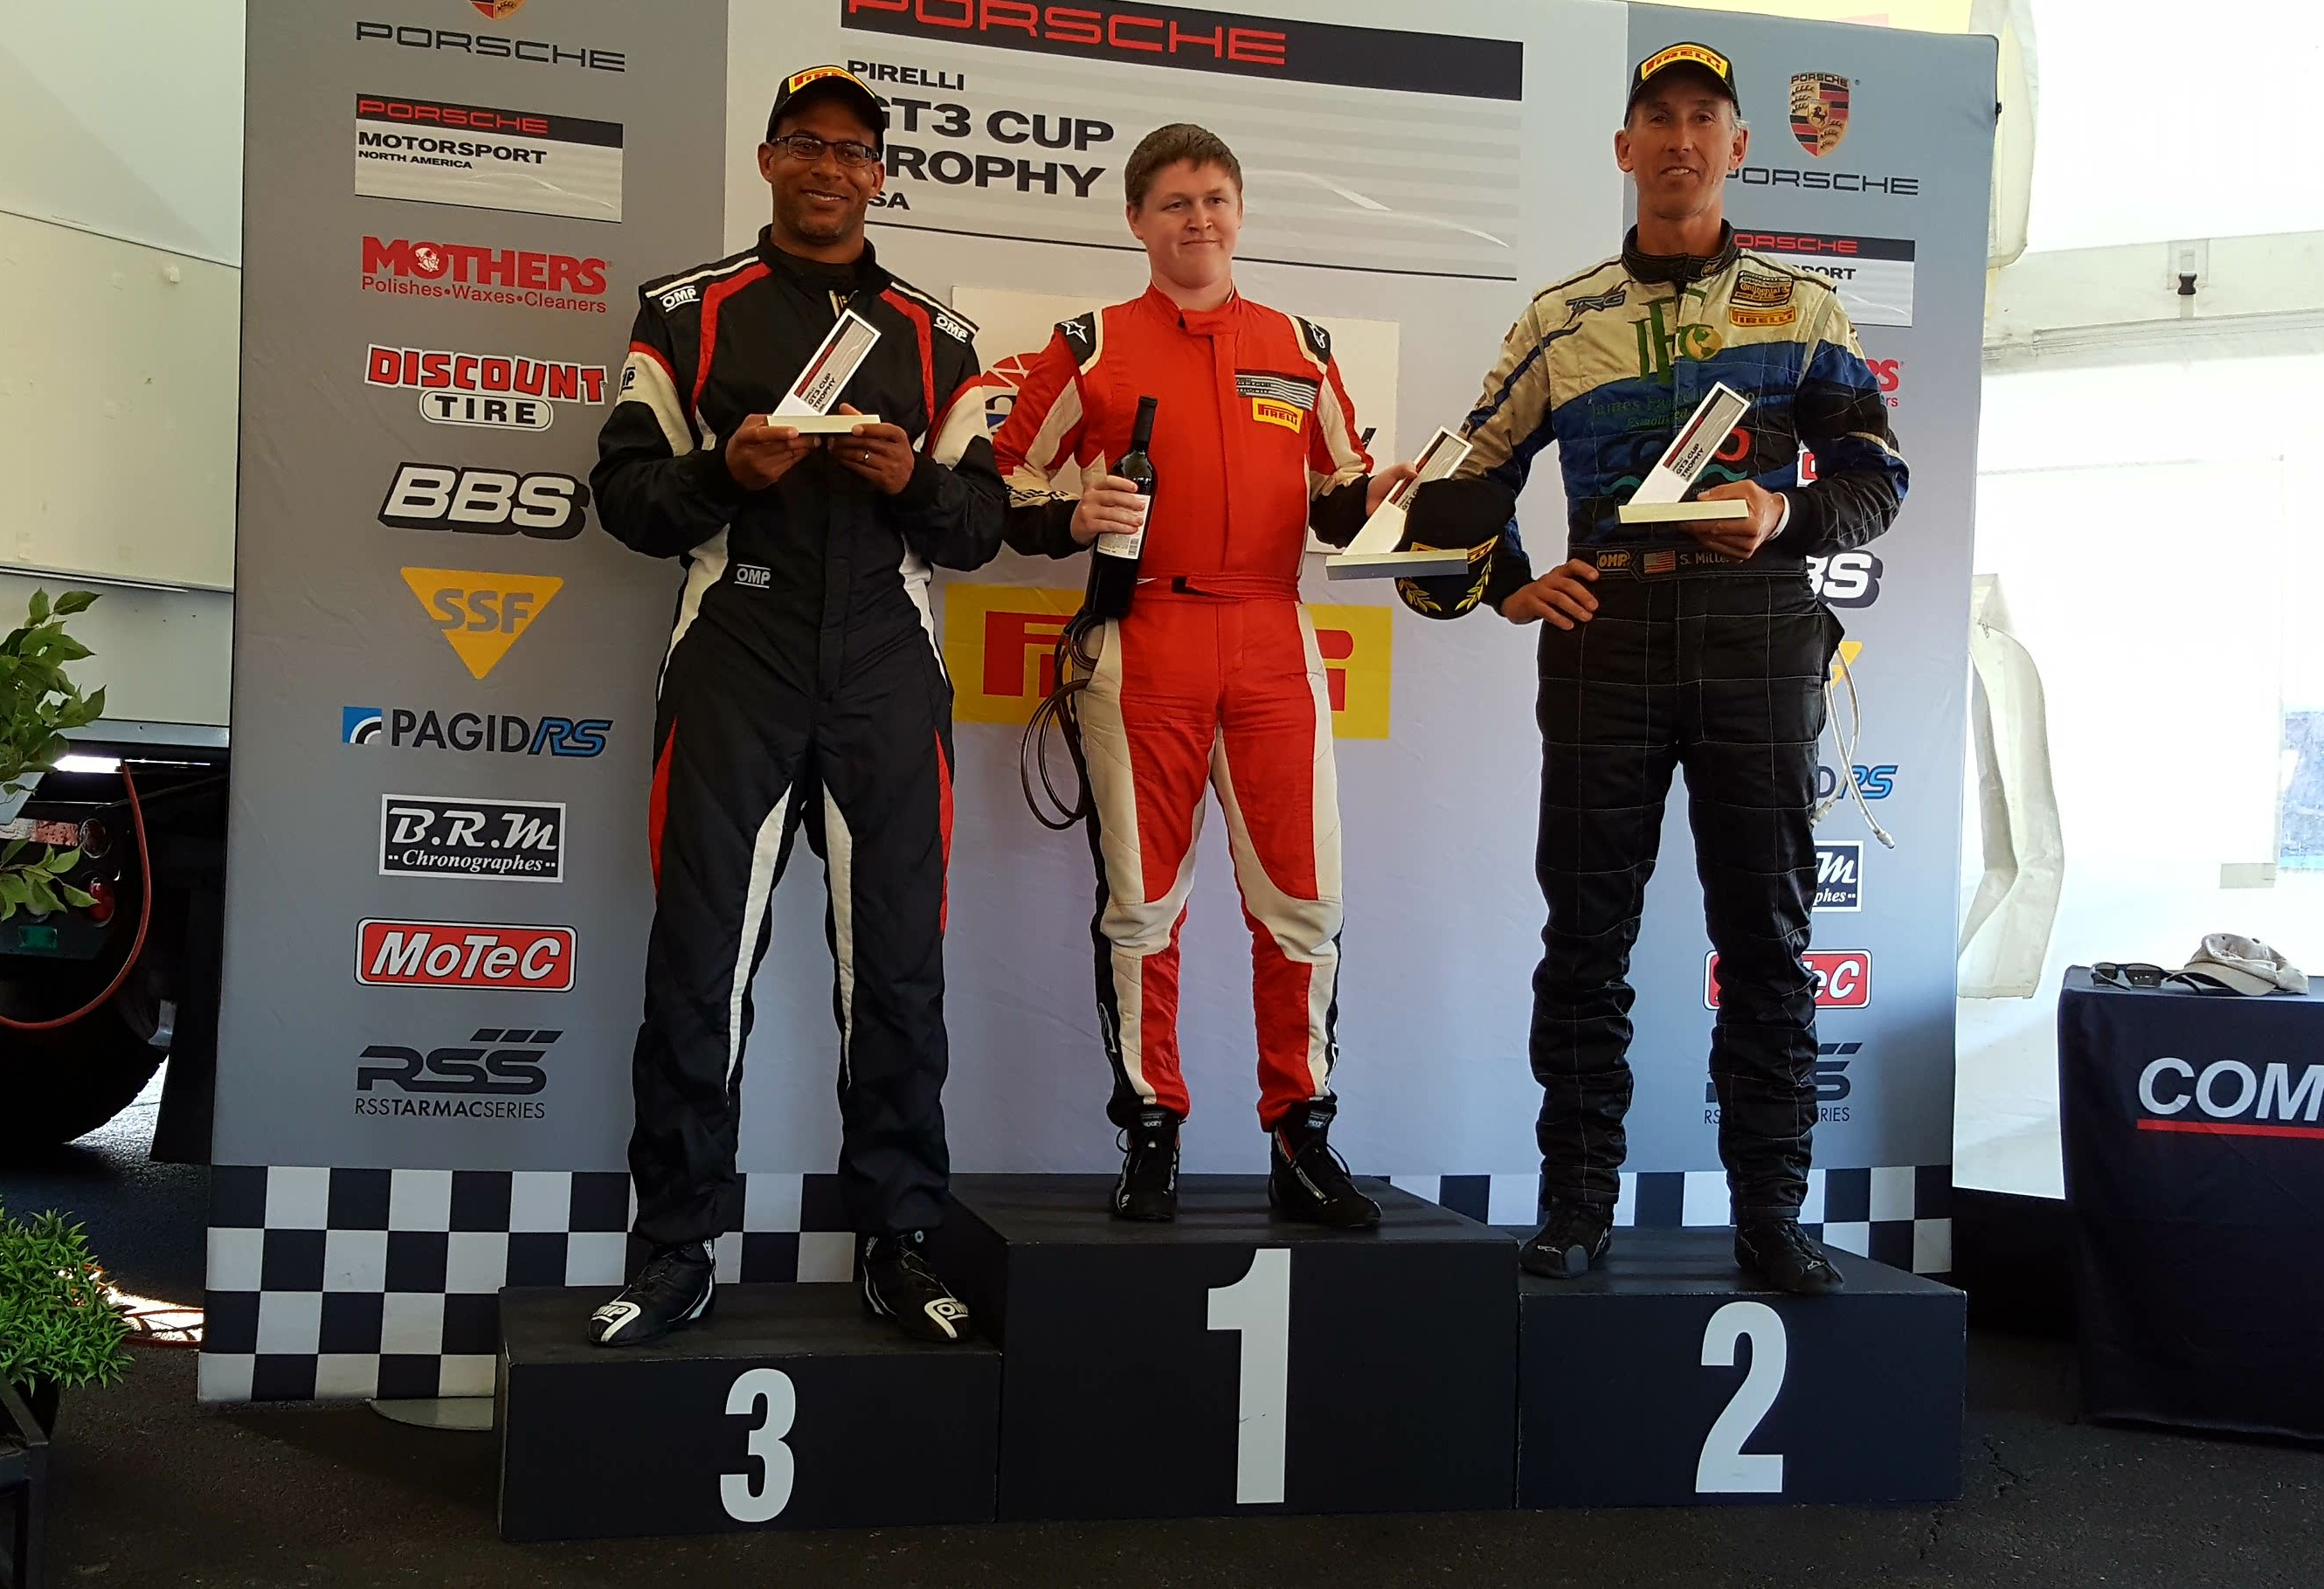 Steve Miller On The Podium at Sonoma Porsche Pirelli GT3 Cup Race